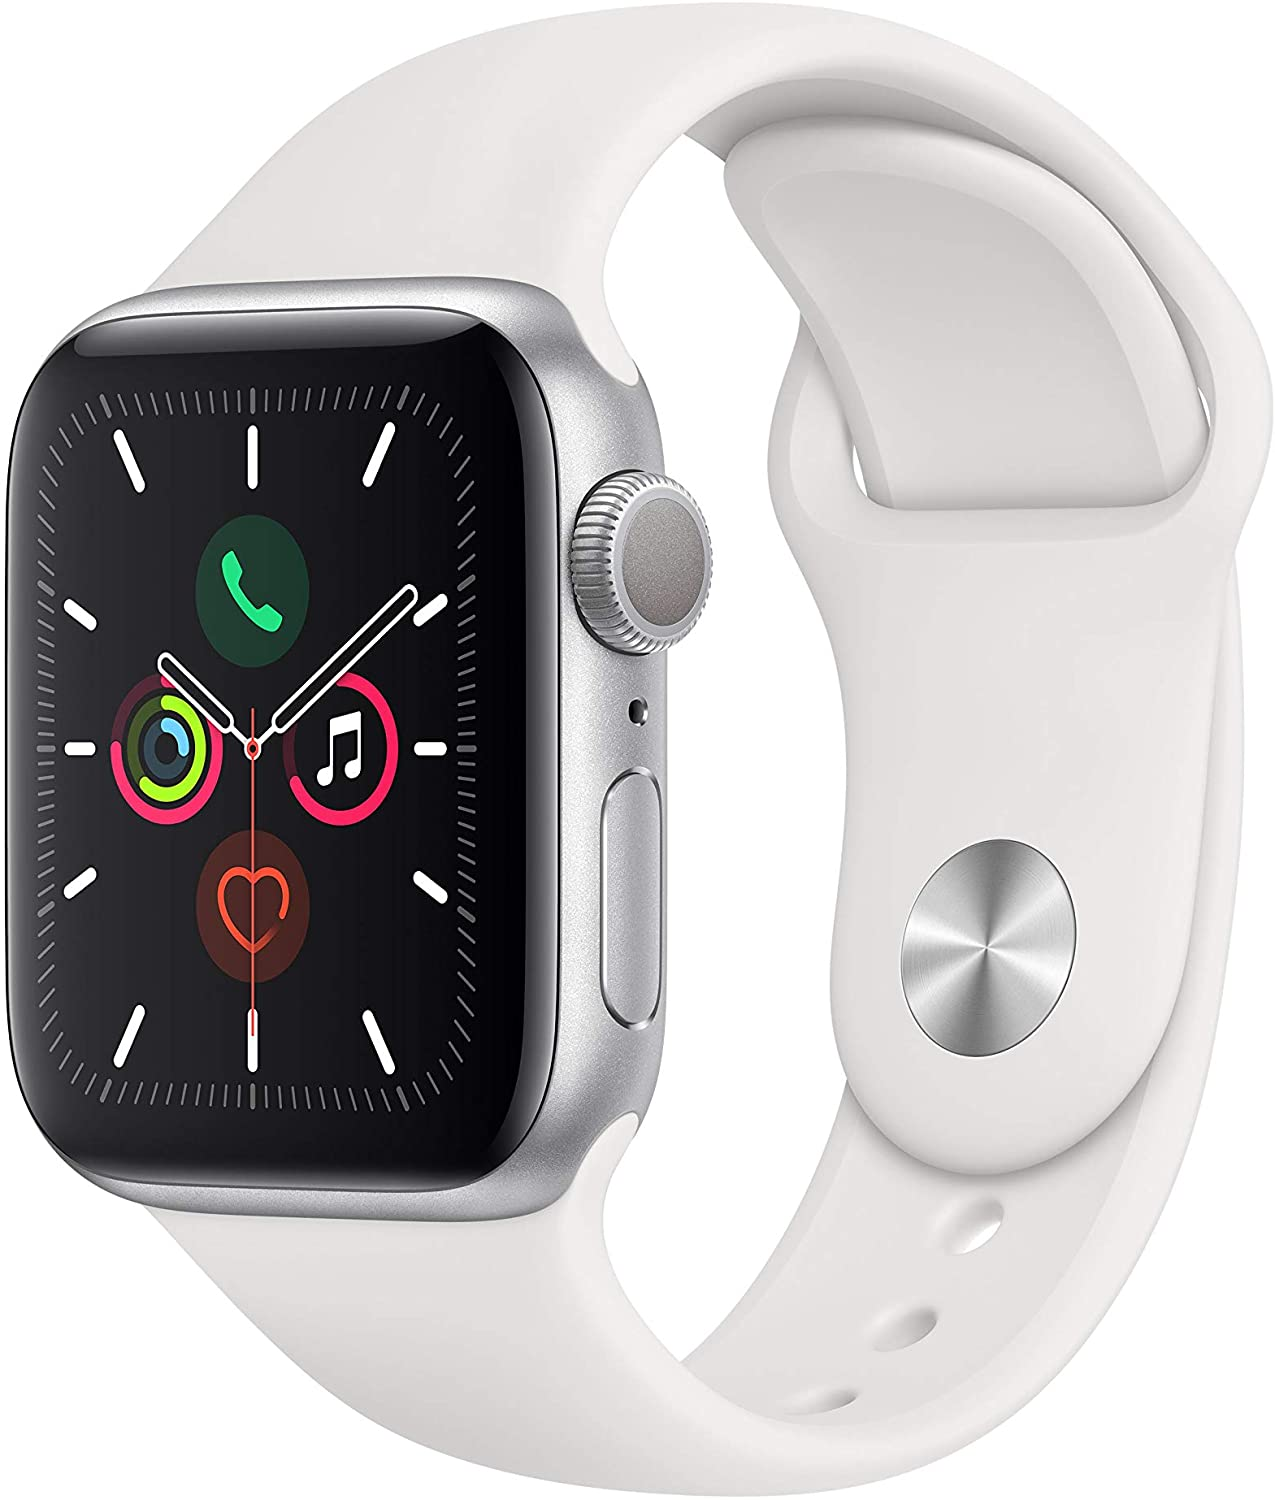 Apple Watch Series 5 plateado